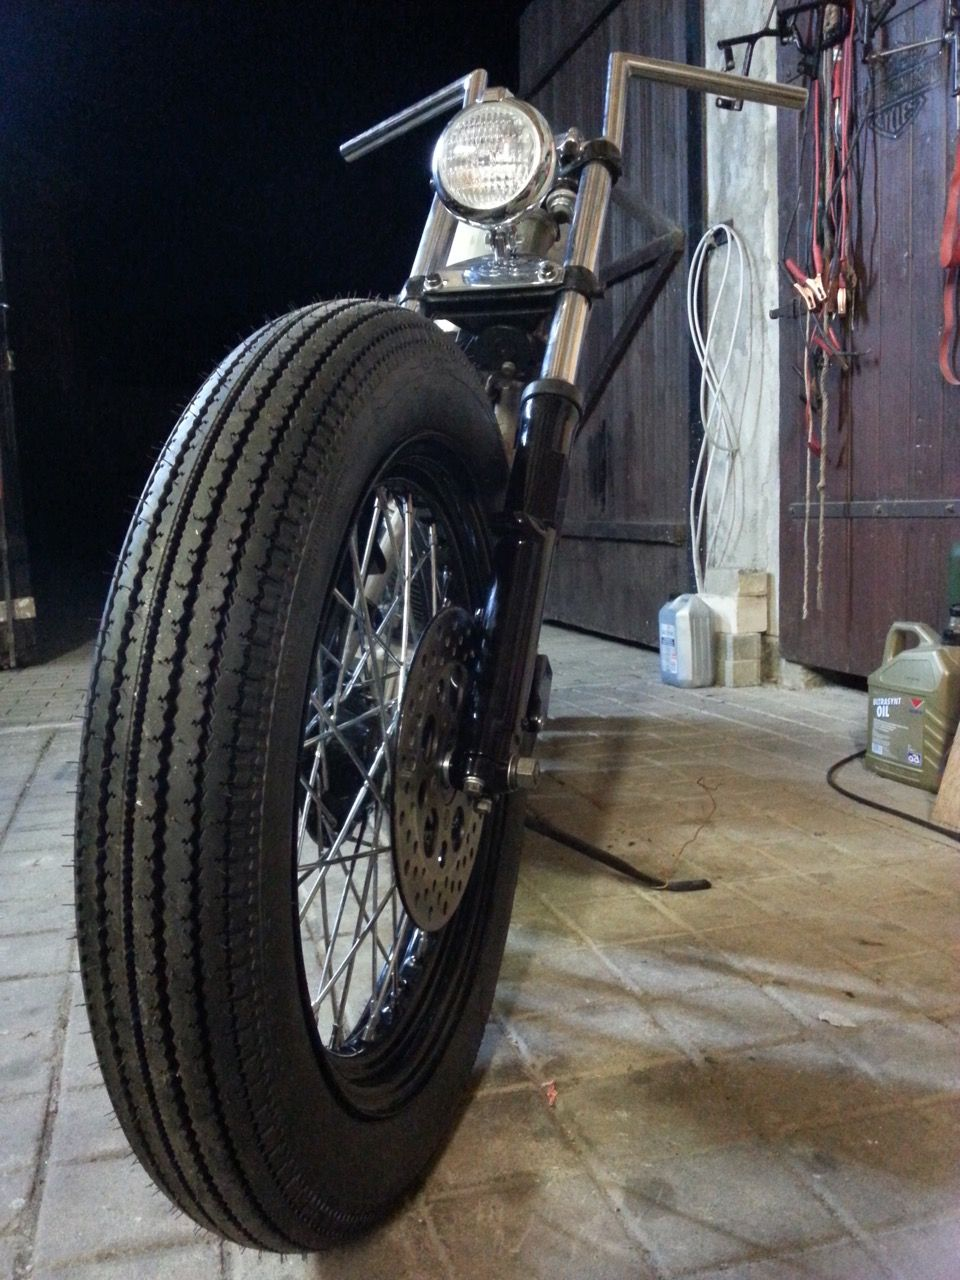 August 2015 Shovelhead Bobber Project Frontend Shinko Classic Series 270 Front Tire 4 00 19 On Original Rim Centered And Spaced Motorrad